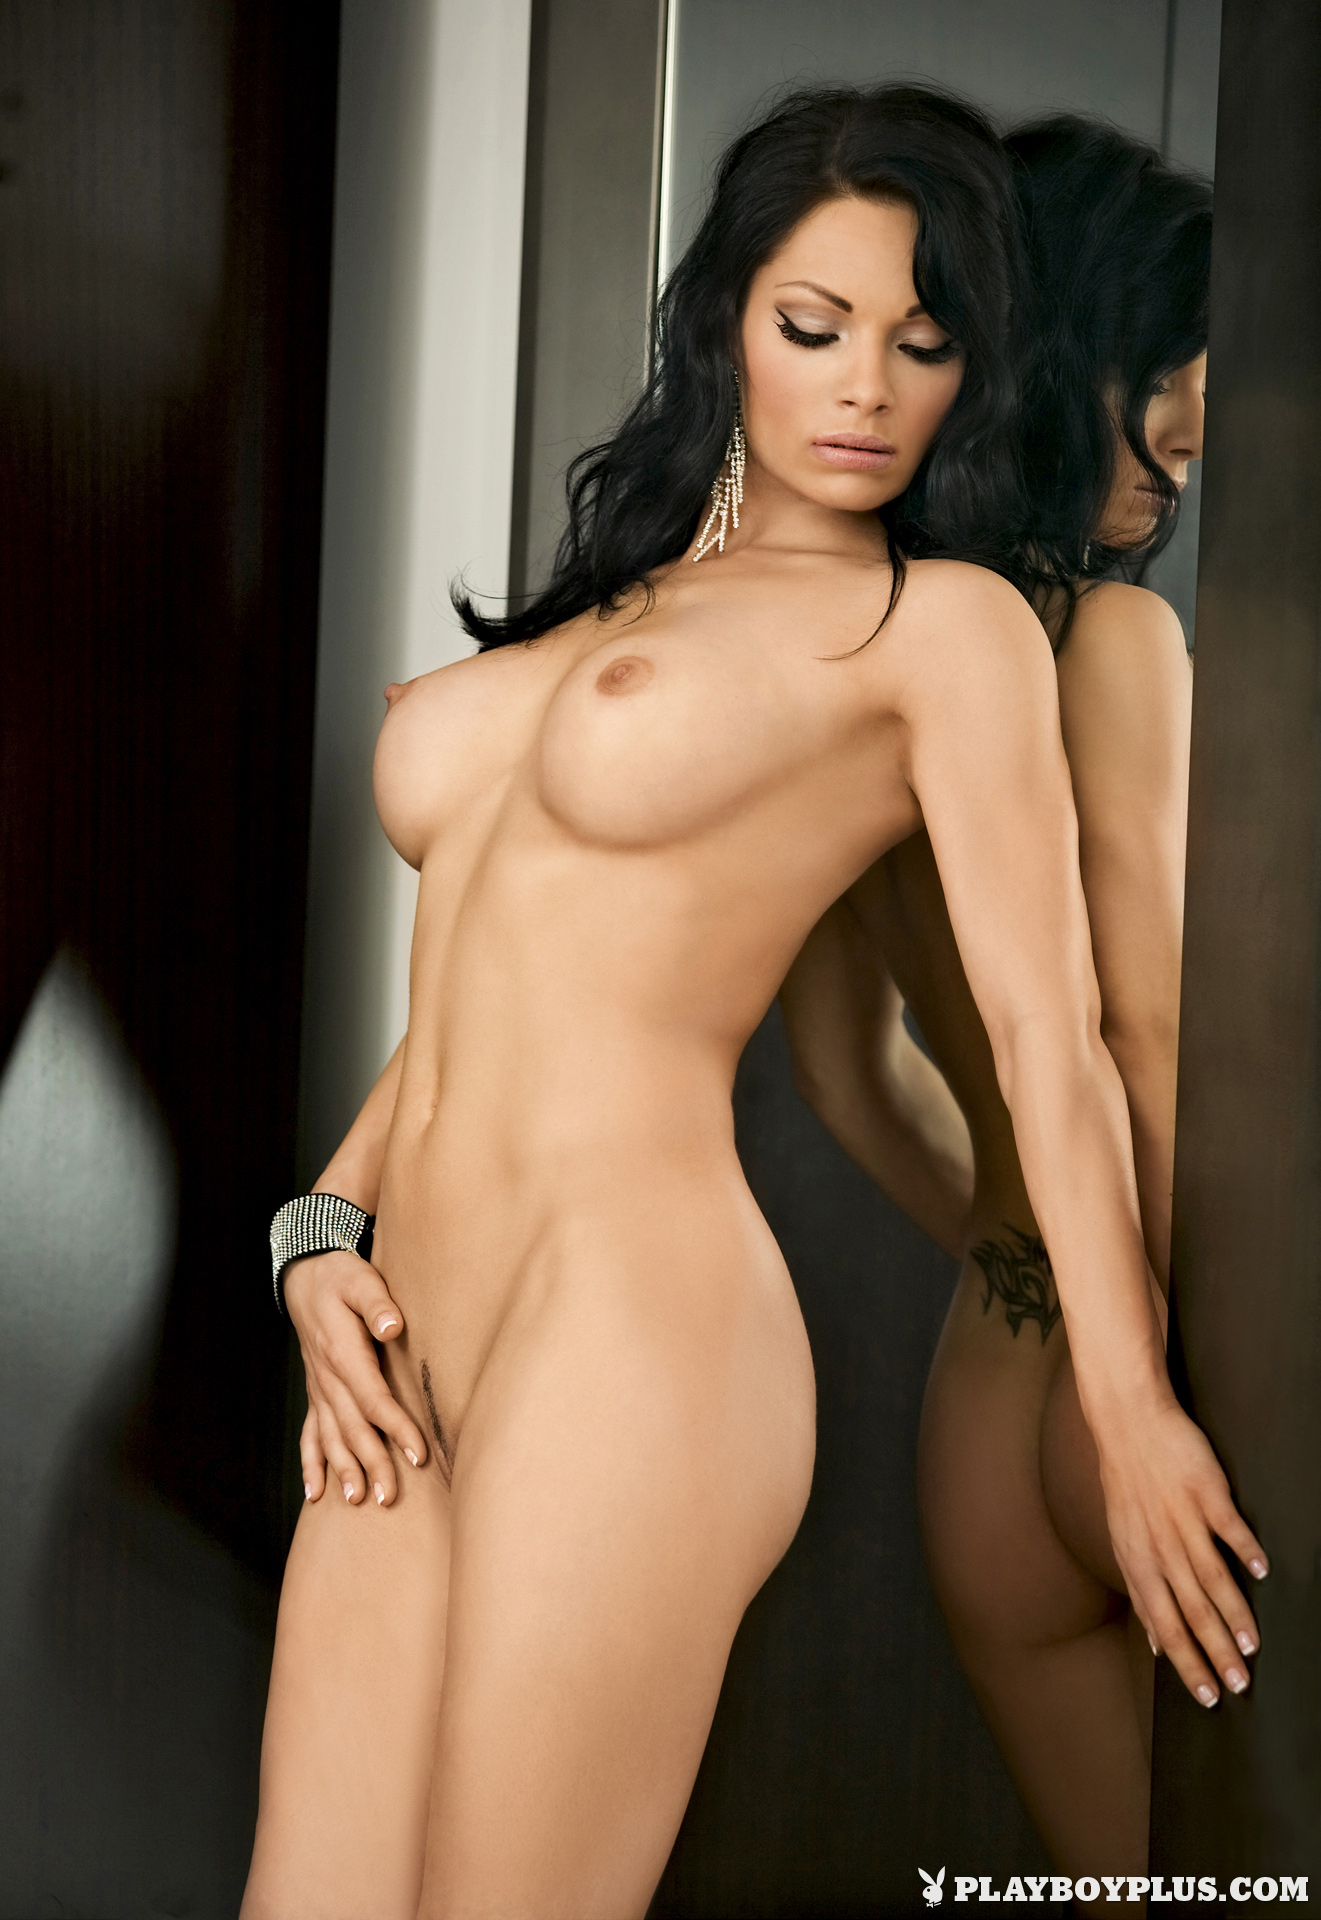 Jenaveve jolie is a gift from god 1